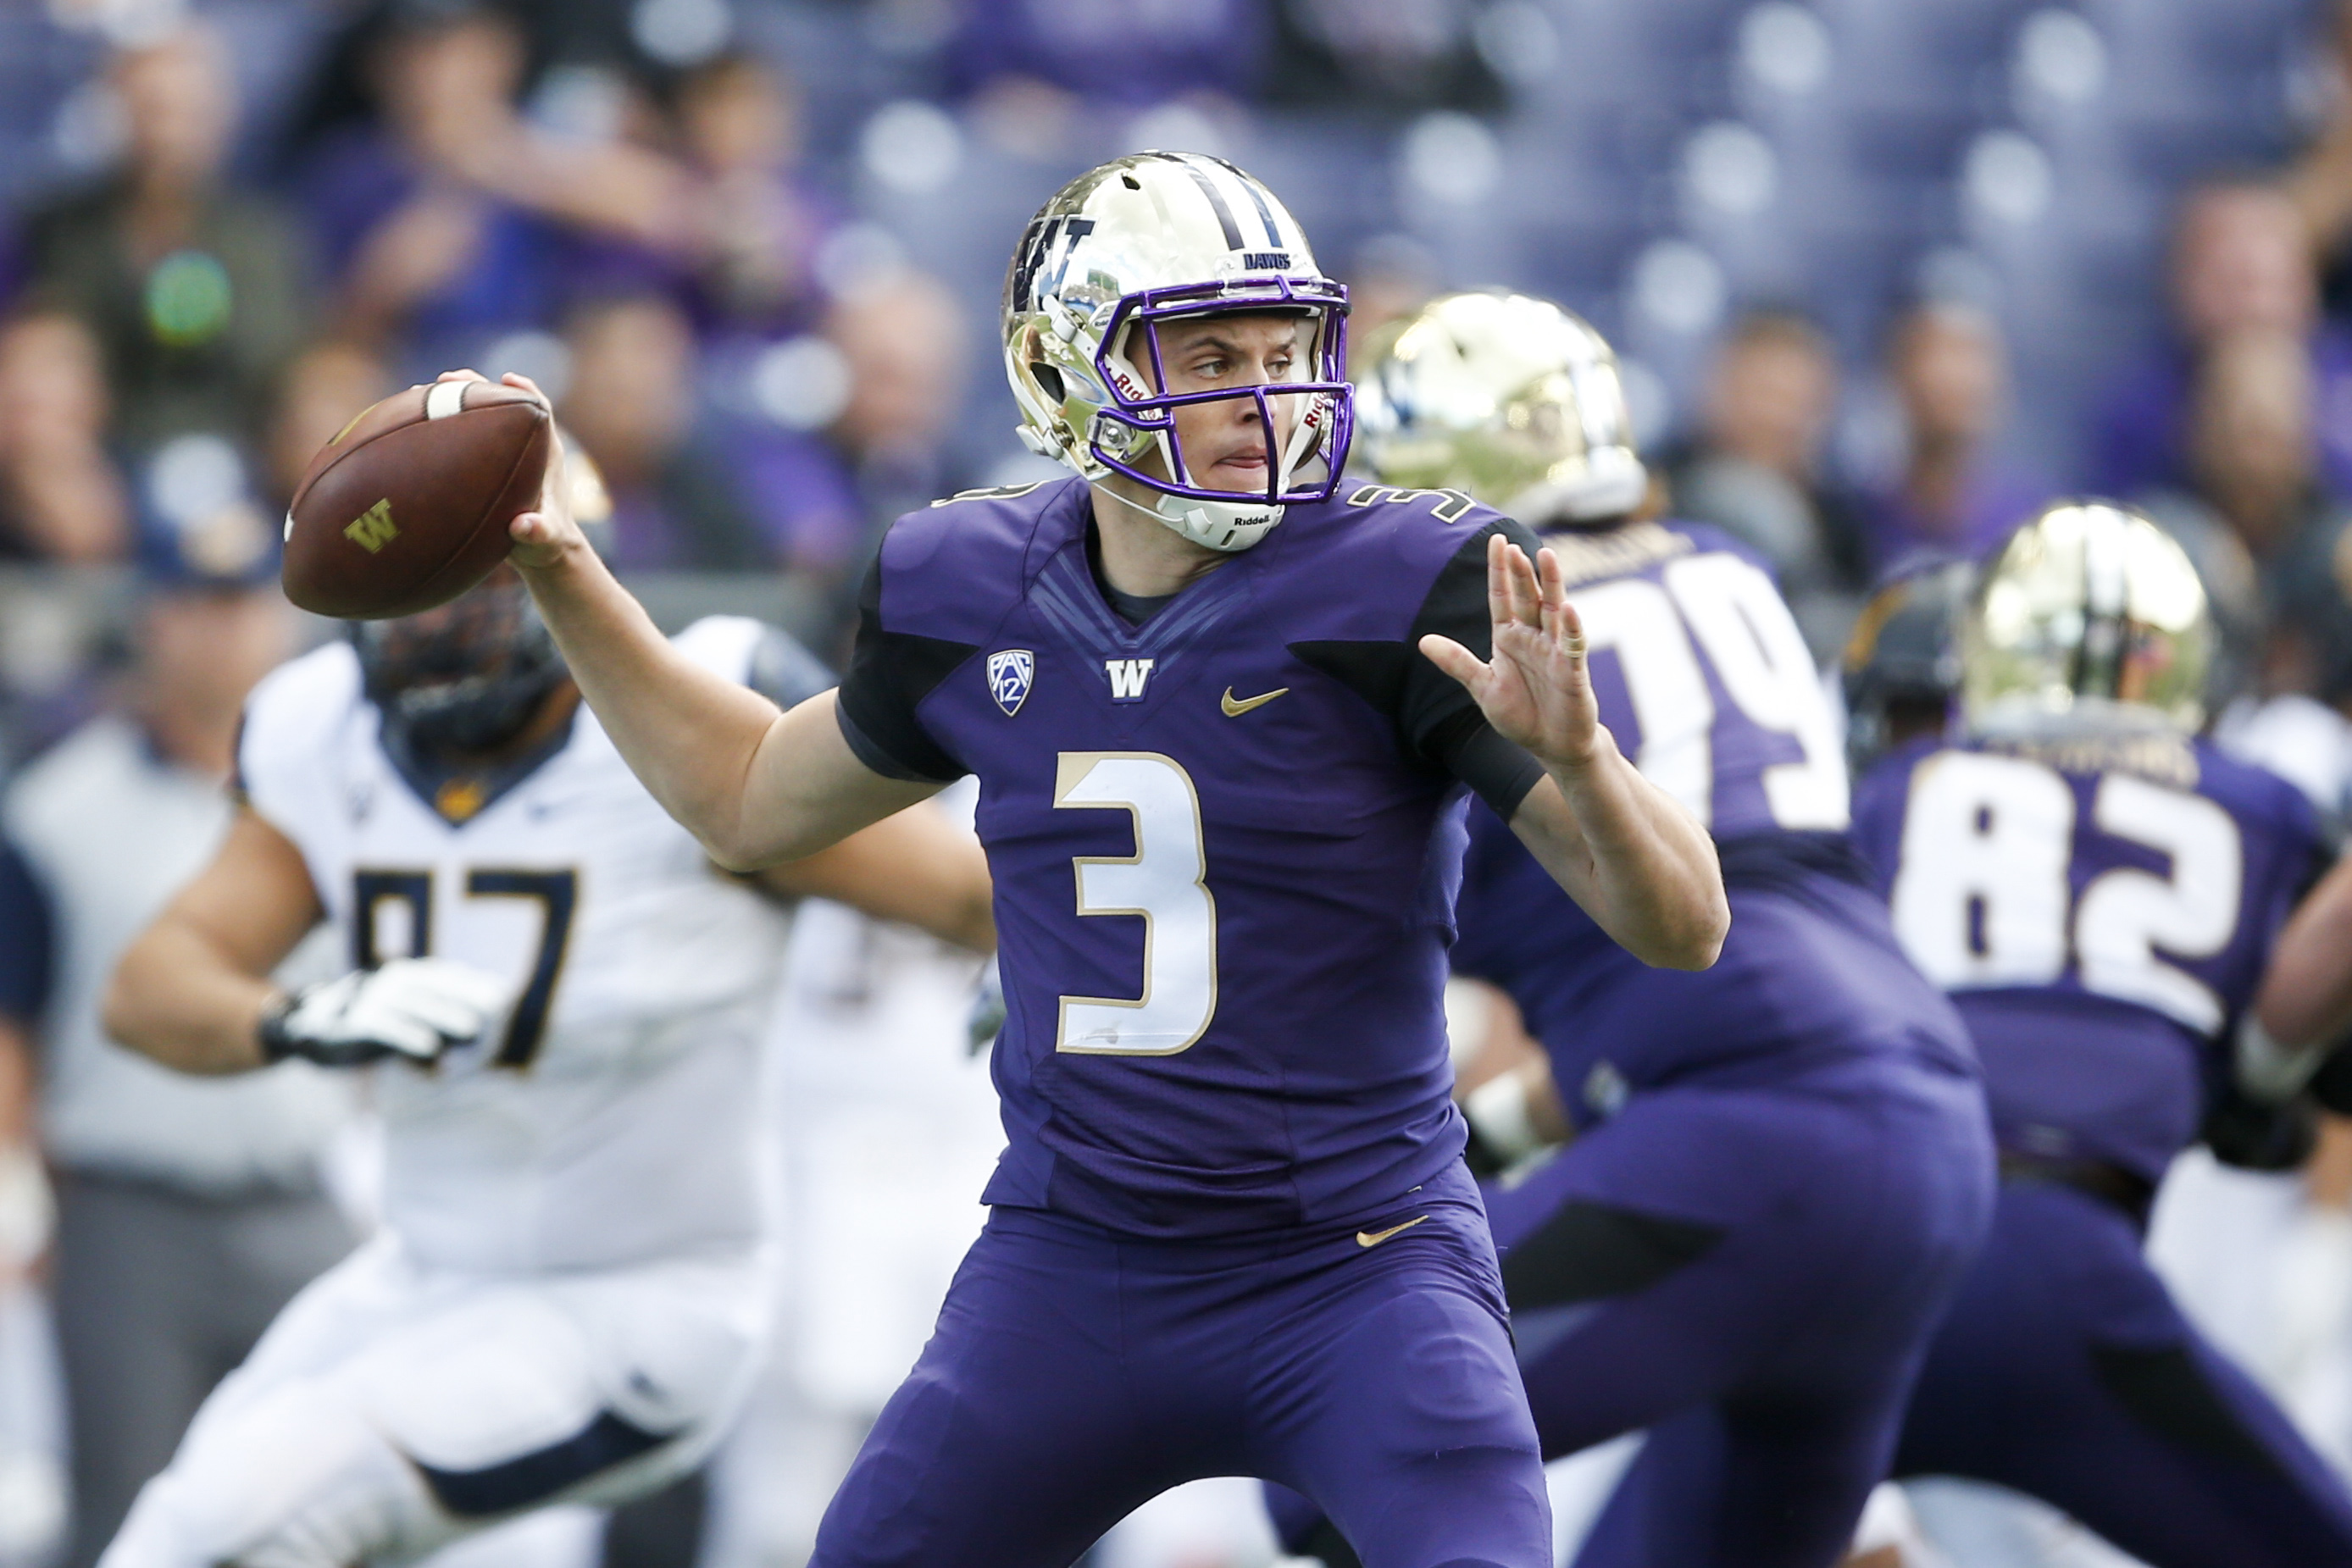 Sep 26, 2015; Seattle, WA, USA; Washington Huskies quarterback Jake Browning (3) throws a pass in the first quarter against the California Golden Bears at Husky Stadium. Mandatory Credit: Jennifer Buchanan-USA TODAY Sports